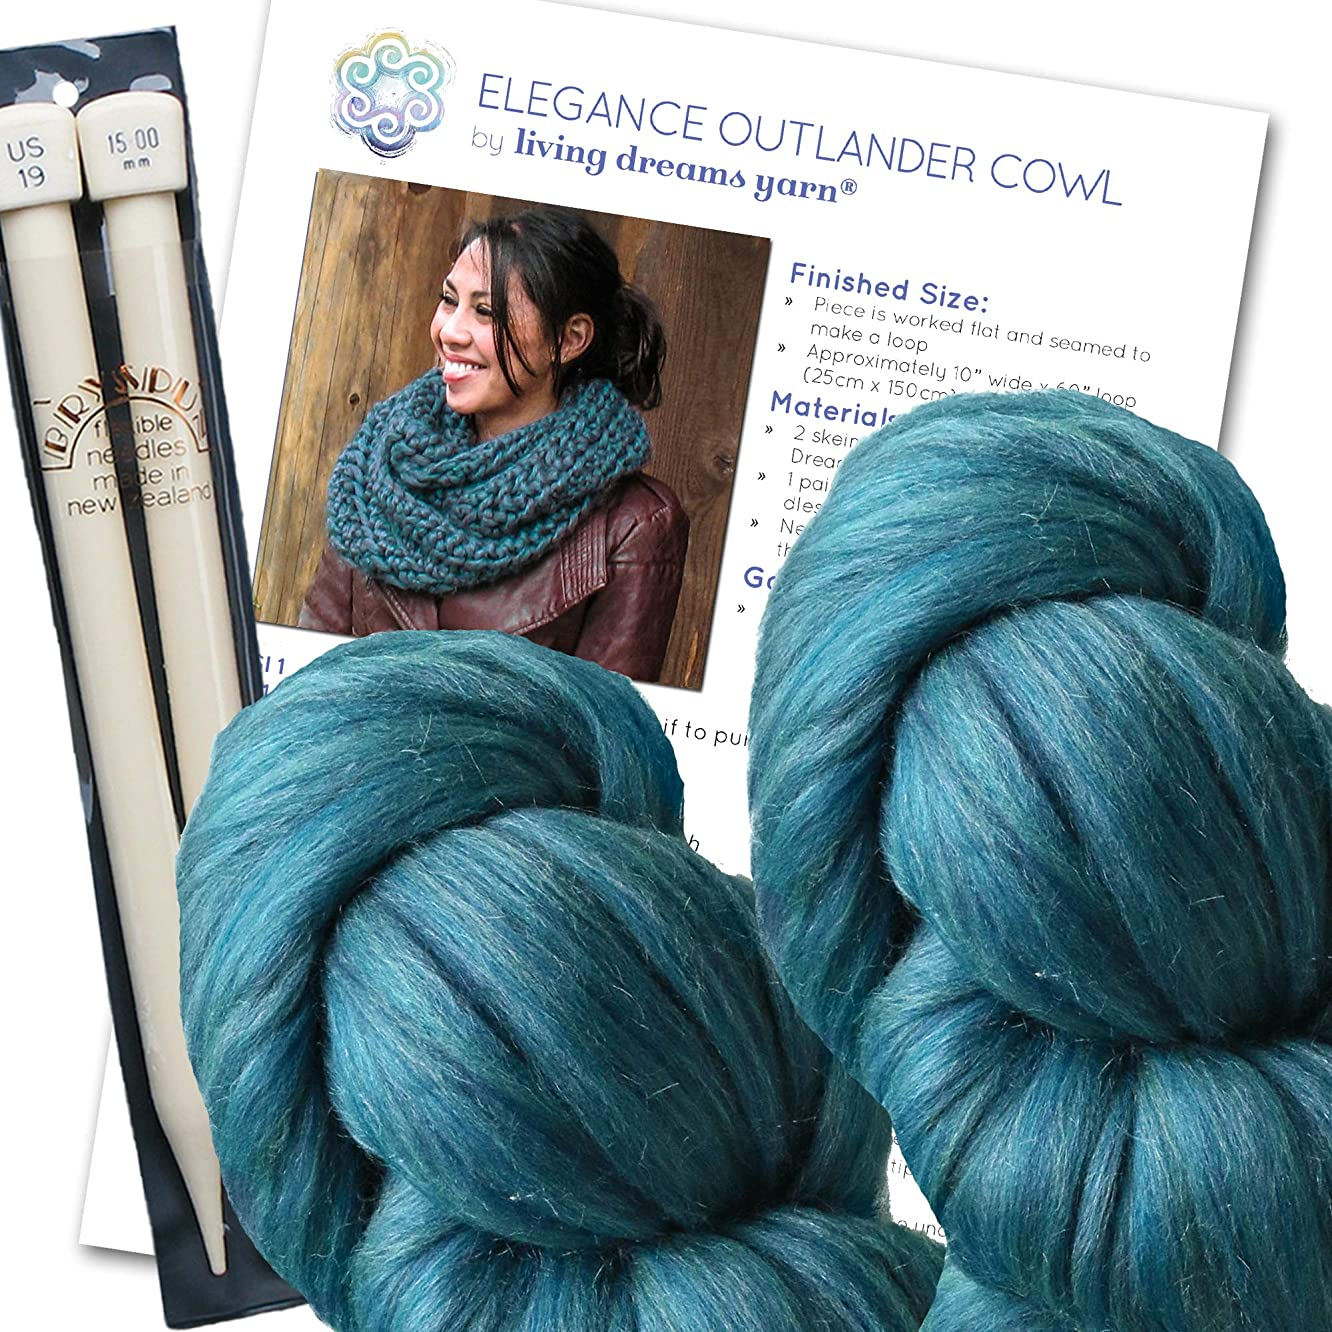 Super Chunky Cowl KNIT KIT includes Soft Thick Merino Silk Yarn, Big Needles and Written Pattern w. Photo Tutorial. Elegance Outlander Cowl Kit, SAPPHIRE